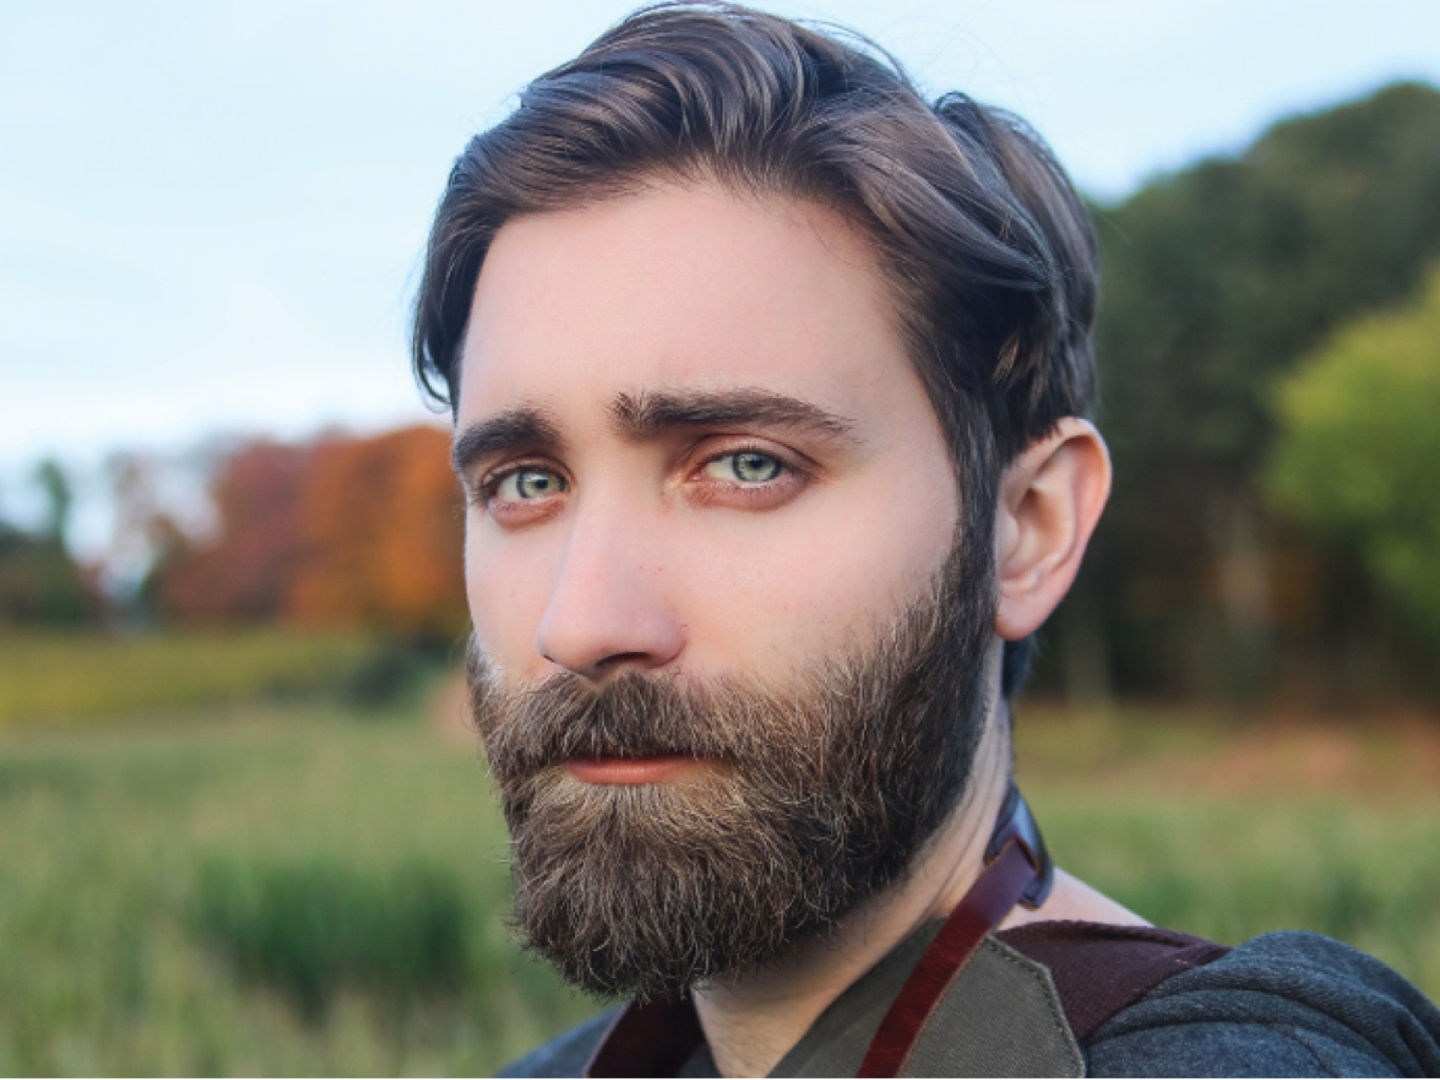 Trimming and shaping a beard